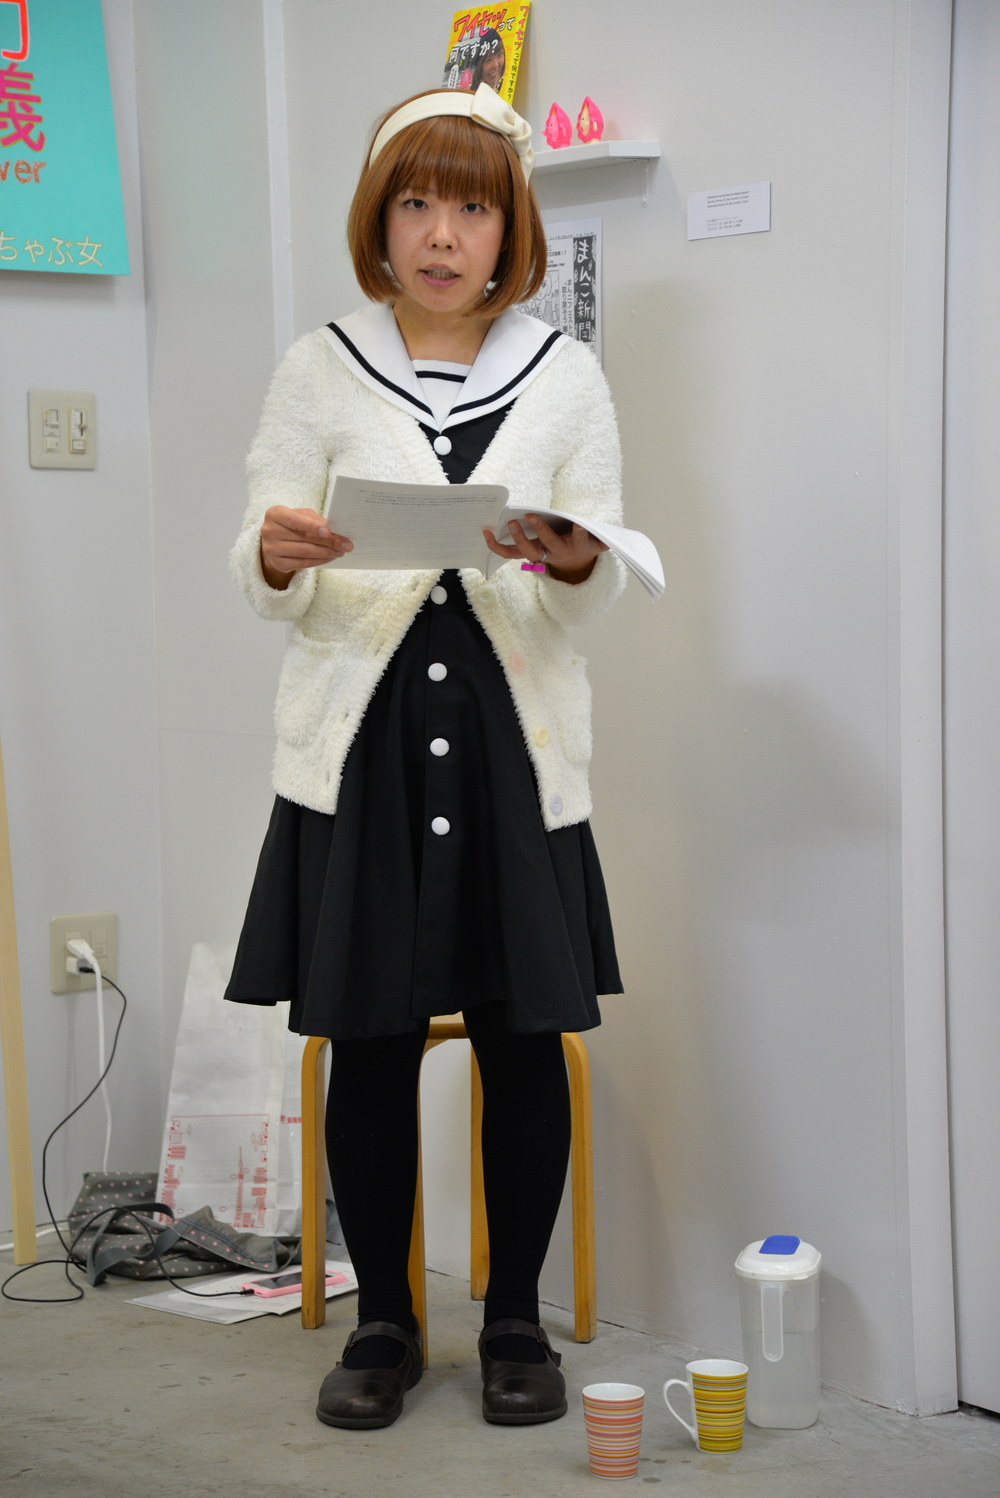 "Megumi Igarashi  Court Performance # 2, 2016  Wednesday February 24   4pm: Reading her lawyer's defense, 2 hours. On wall: Book, toys and shelf.             Normal   0             false   false   false     EN-AU   X-NONE   X-NONE                                                                                                                                                                                                                                                                                                                                                                                                                                                                                                                                                                                                                                                                                                                                                                                                                                                               /* Style Definitions */  table.MsoNormalTable 	{mso-style-name:""Table Normal""; 	mso-tstyle-rowband-size:0; 	mso-tstyle-colband-size:0; 	mso-style-noshow:yes; 	mso-style-priority:99; 	mso-style-parent:""""; 	mso-padding-alt:0cm 5.4pt 0cm 5.4pt; 	mso-para-margin-top:0cm; 	mso-para-margin-right:0cm; 	mso-para-margin-bottom:10.0pt; 	mso-para-margin-left:0cm; 	line-height:115%; 	mso-pagination:widow-orphan; 	font-size:11.0pt; 	font-family:""Calibri"",sans-serif; 	mso-ascii-font-family:Calibri; 	mso-ascii-theme-font:minor-latin; 	mso-hansi-font-family:Calibri; 	mso-hansi-theme-font:minor-latin; 	mso-fareast-language:EN-US;}"